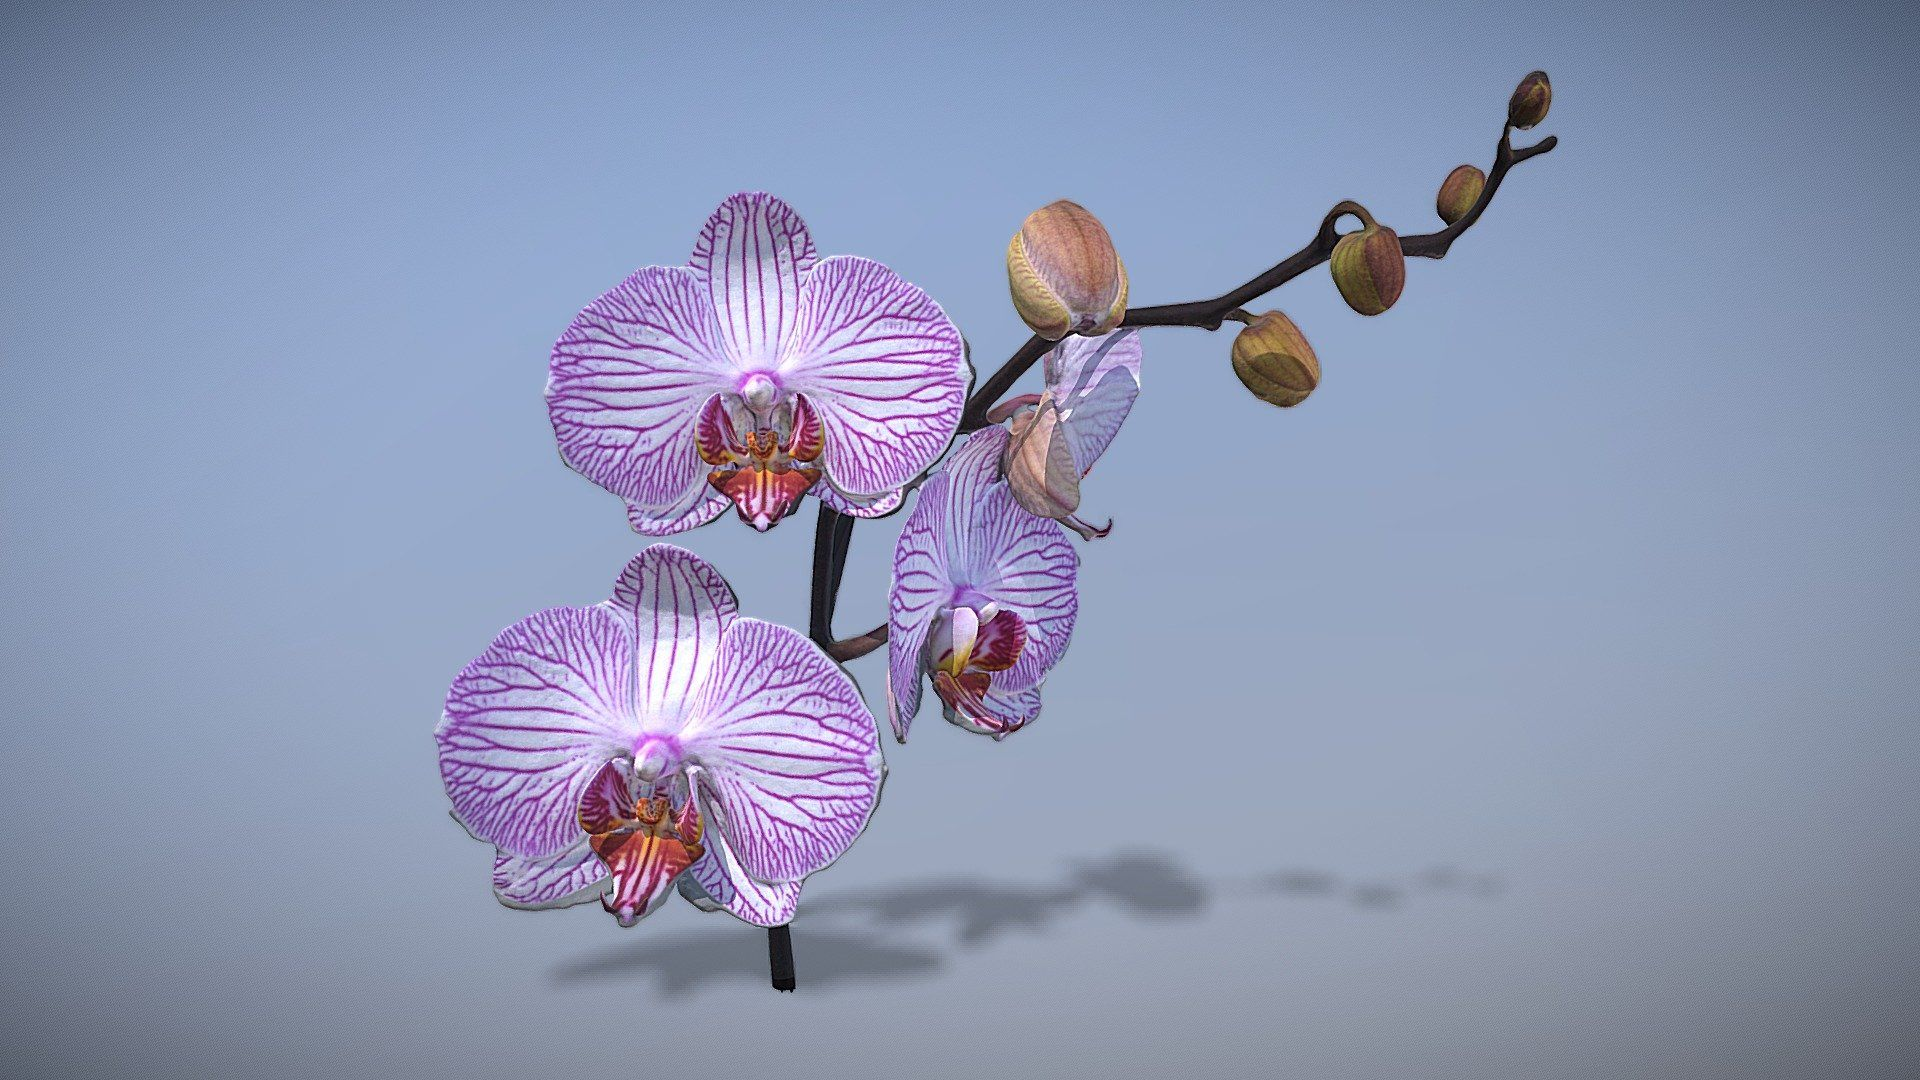 Orchid Flower By Thesidekick Orchid Flower Flower Download Orchids